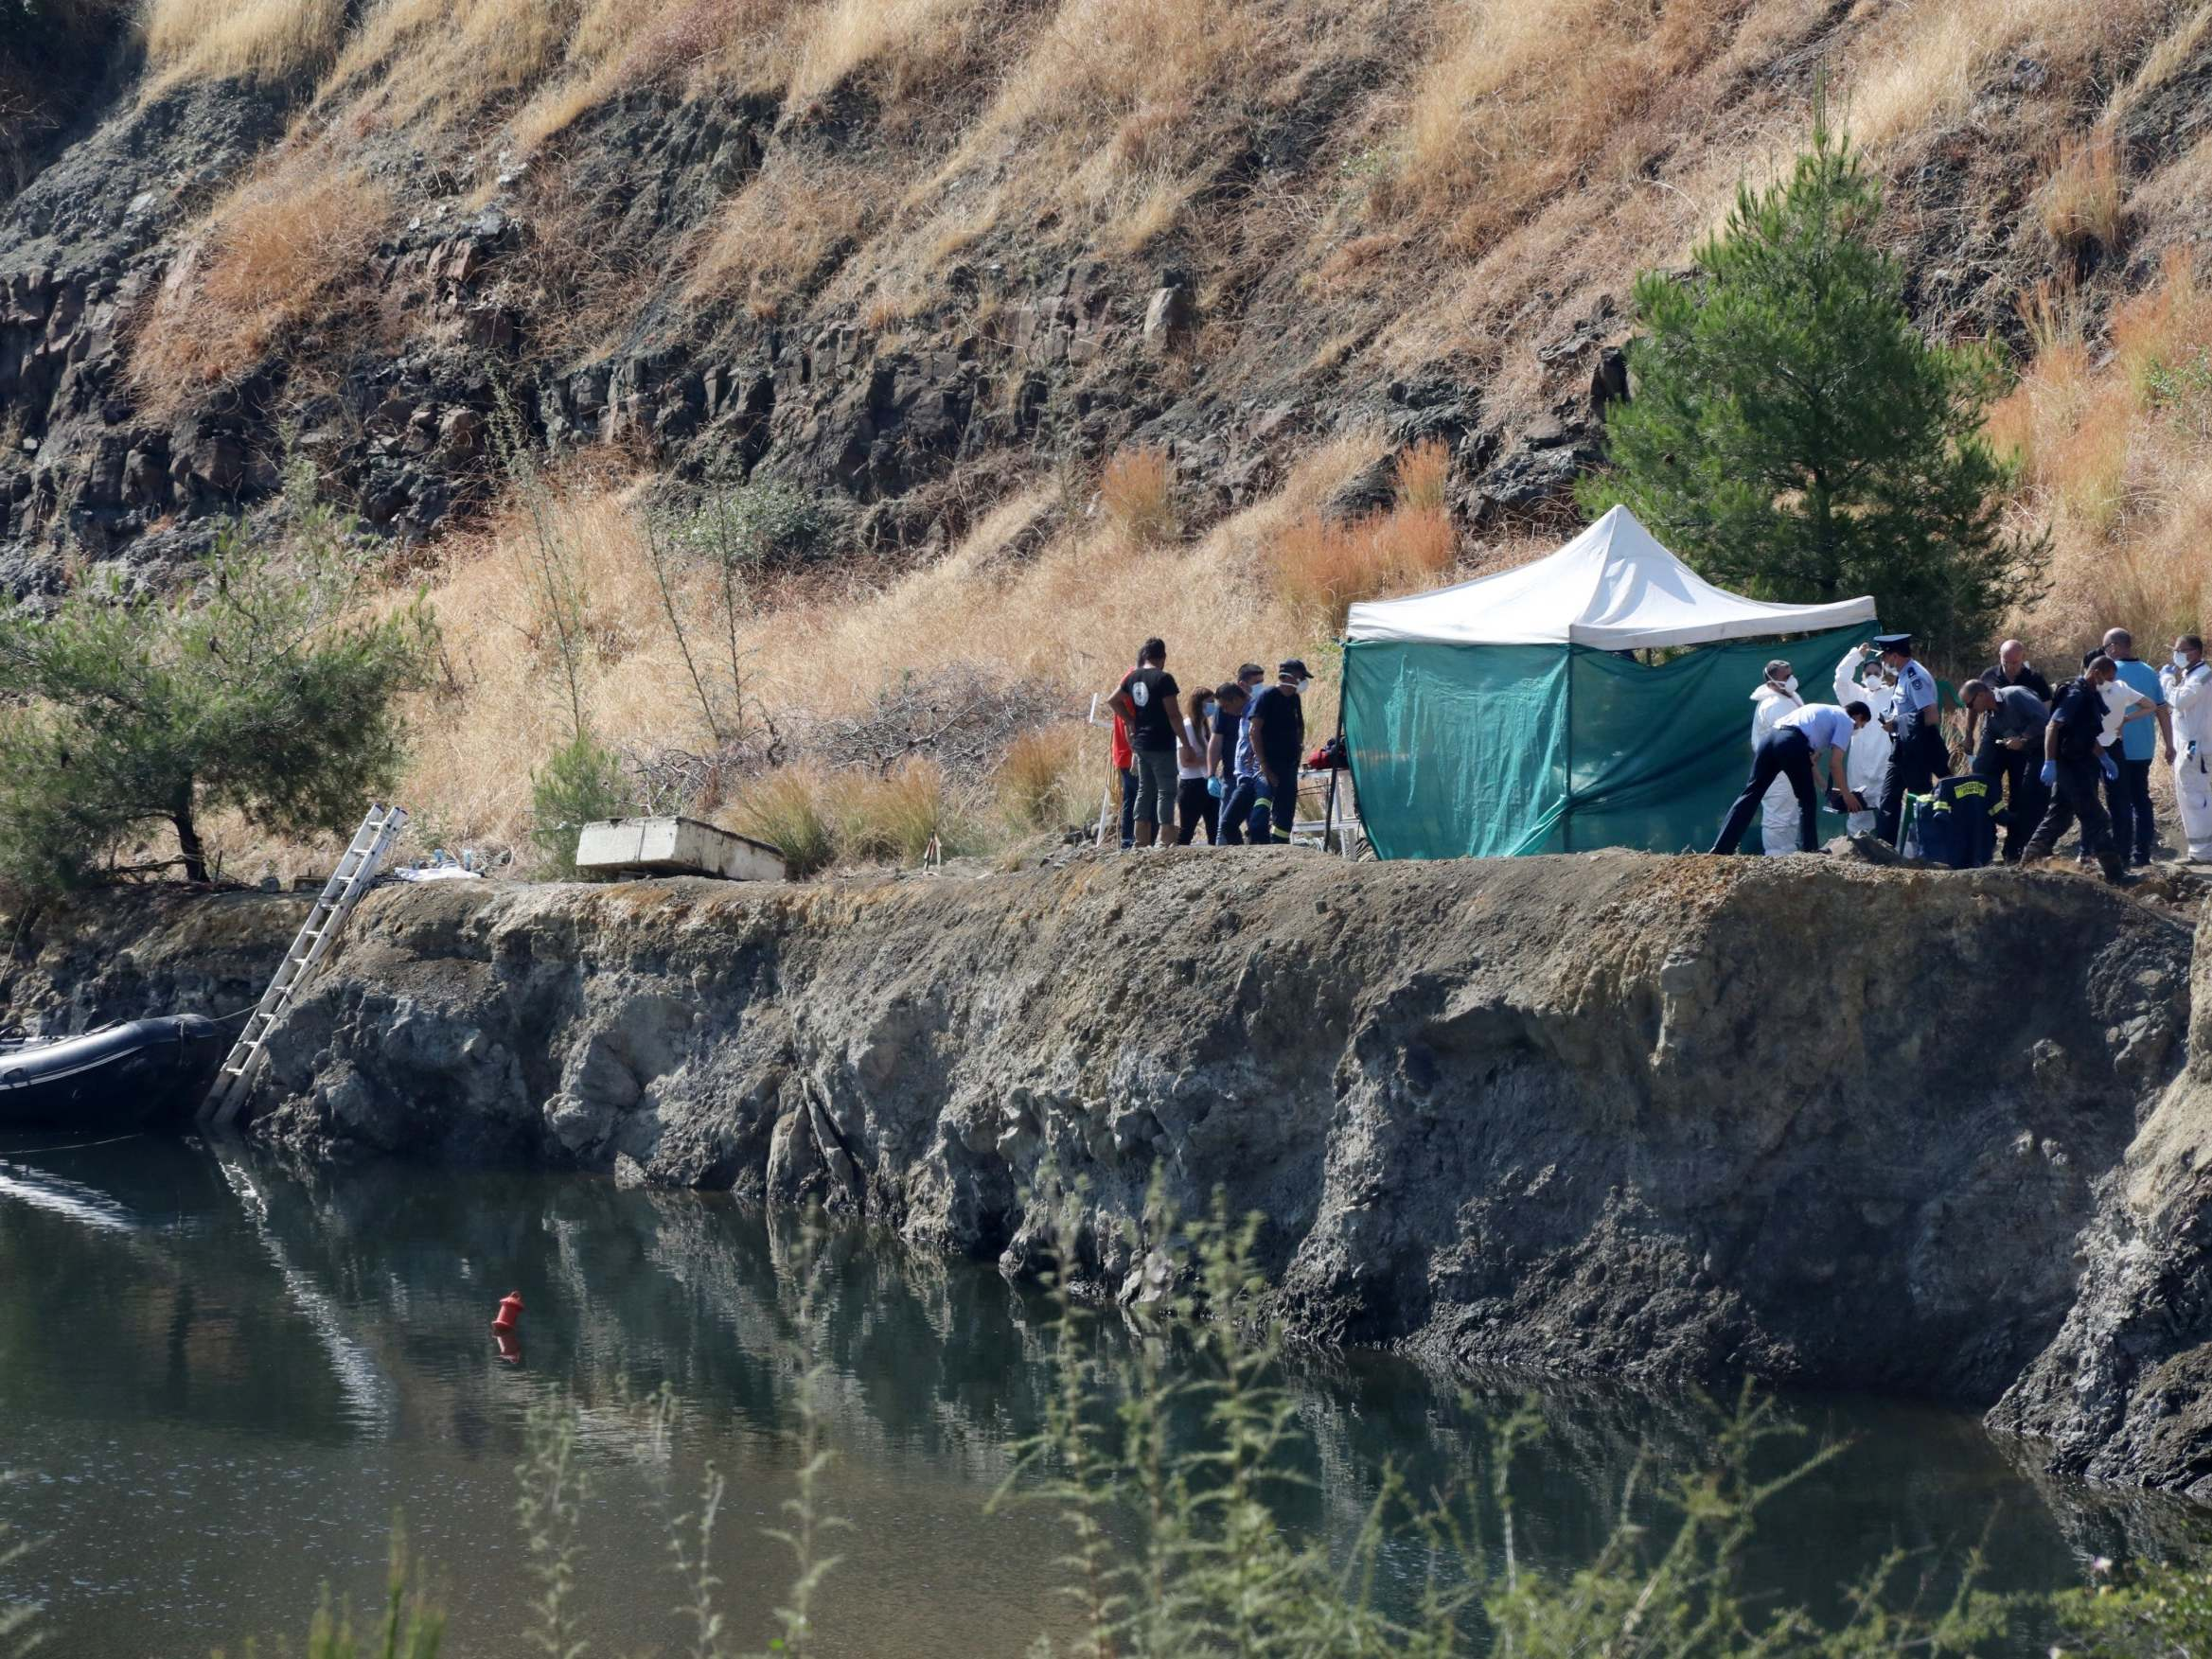 Cyprus serial killer: Child's body found in lake believed to be seventh victim